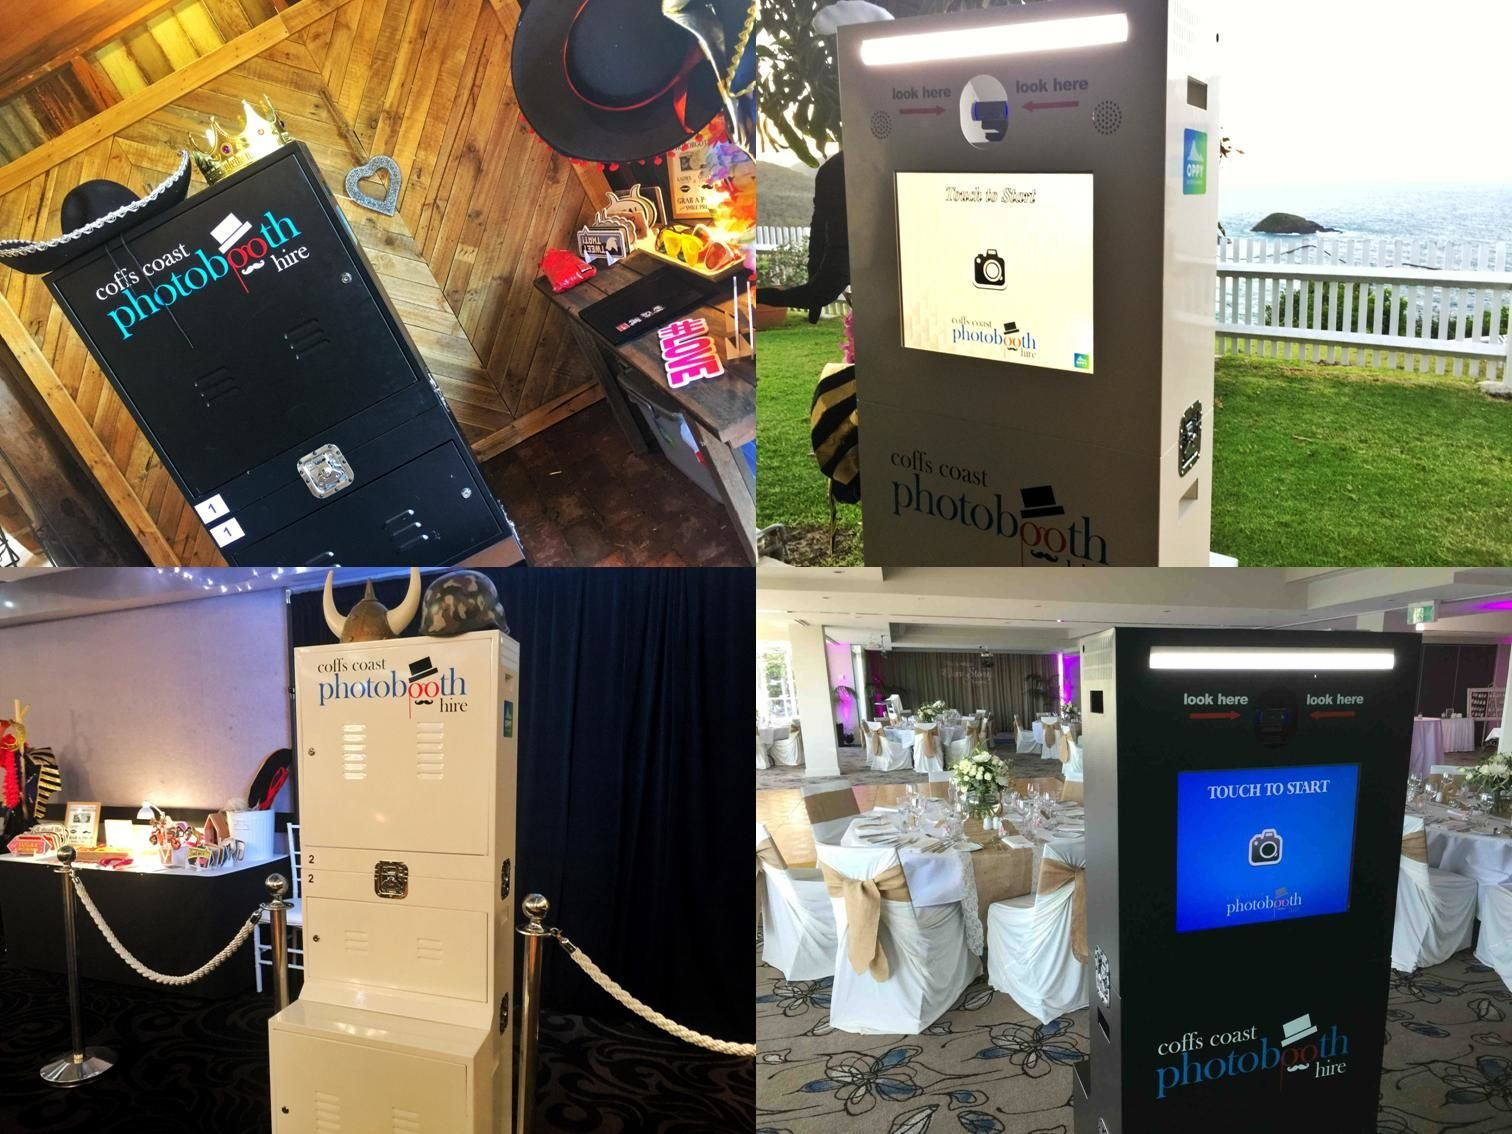 examples of open air photobooths